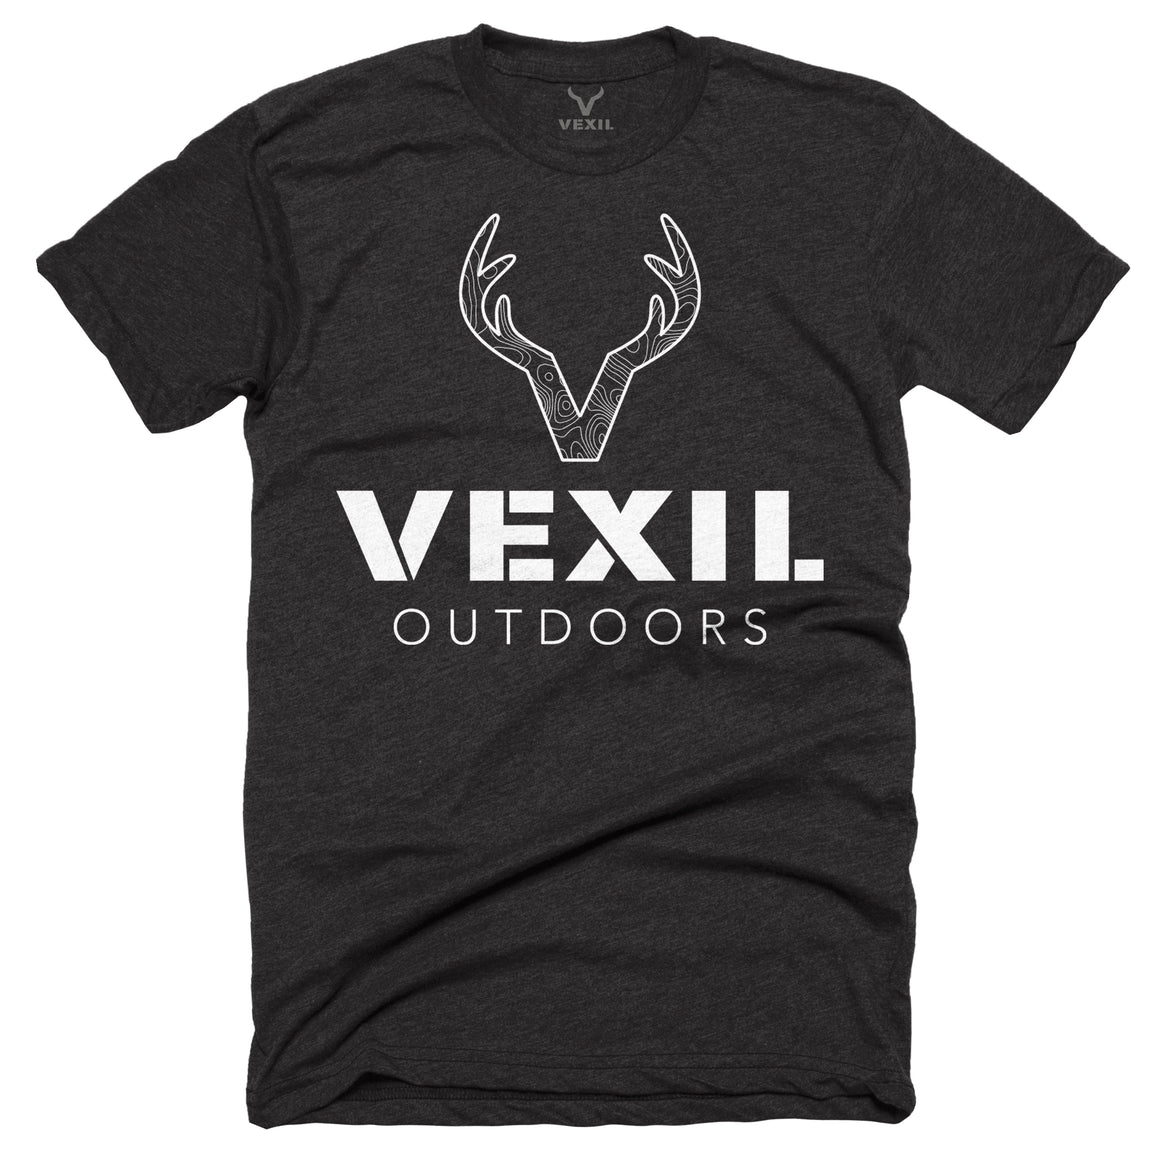 Vexil Outdoors - Topo Buck - Charcoal